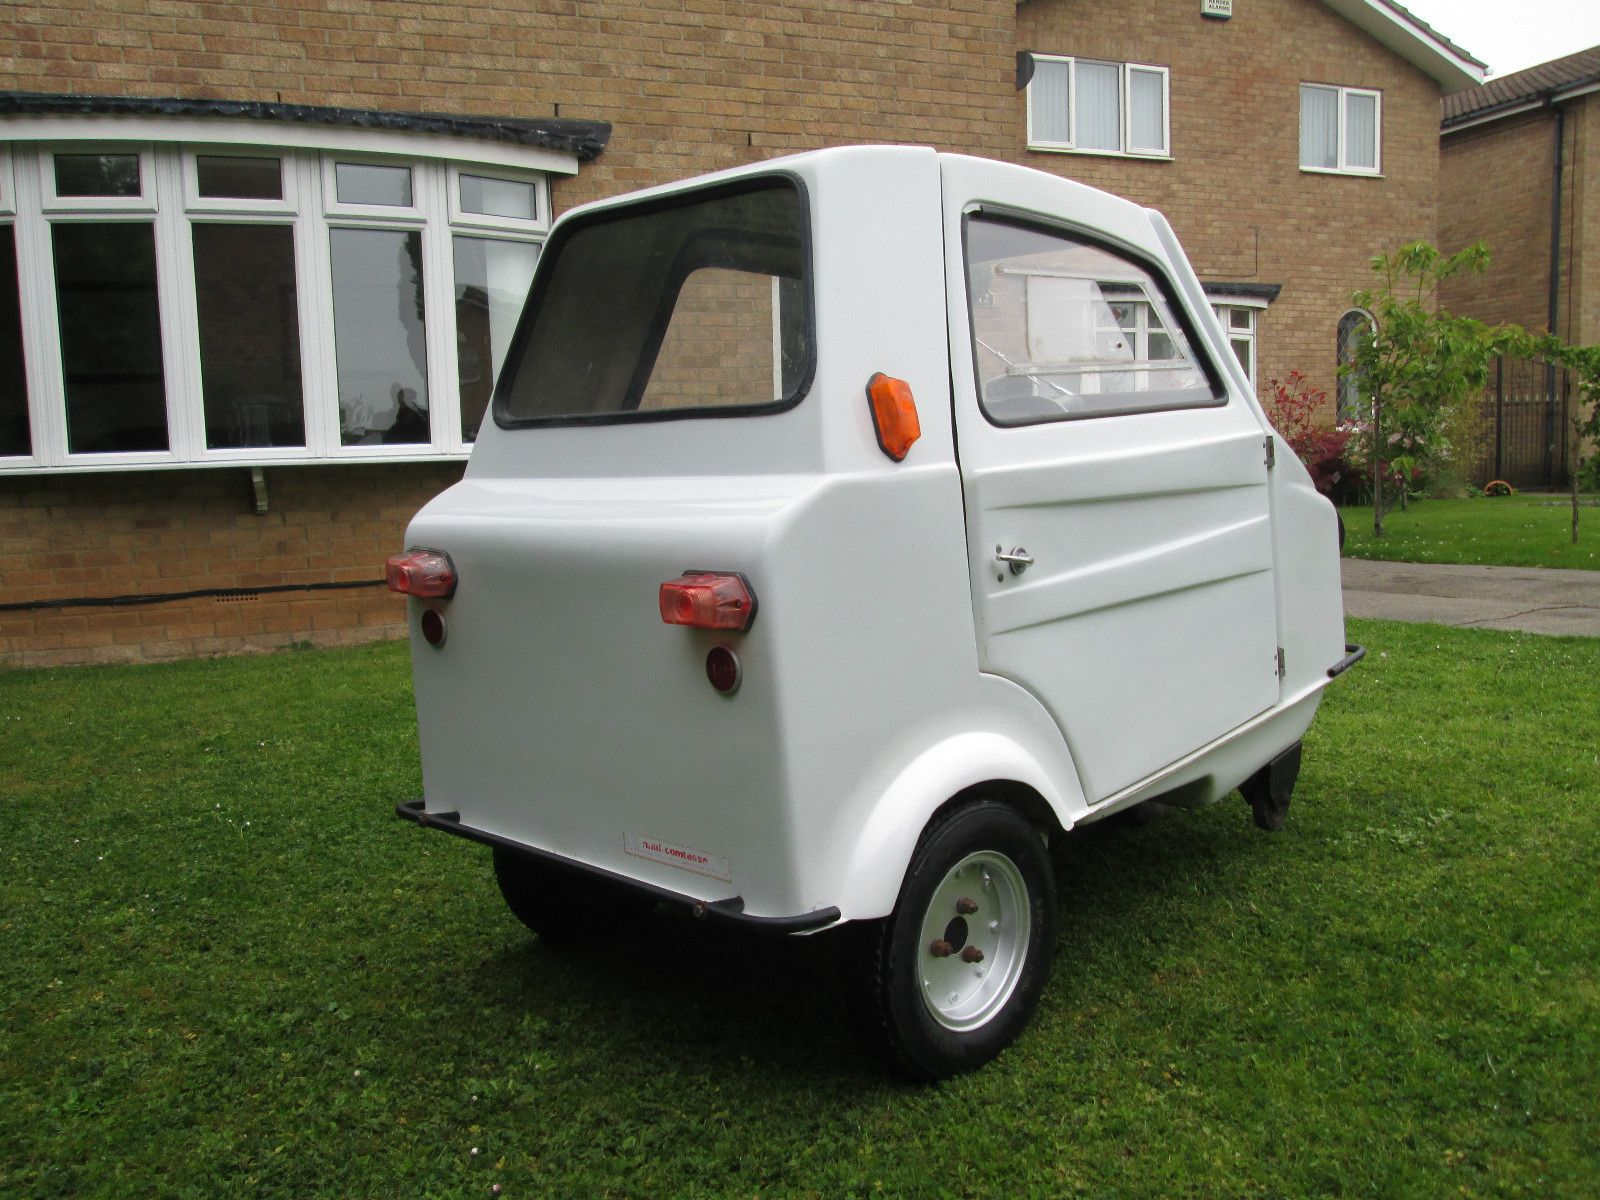 MINI COMTESSE MICROCAR BUBBLECAR TRIKE MOPED PEEL TINY BARN FIND RARE MICRO